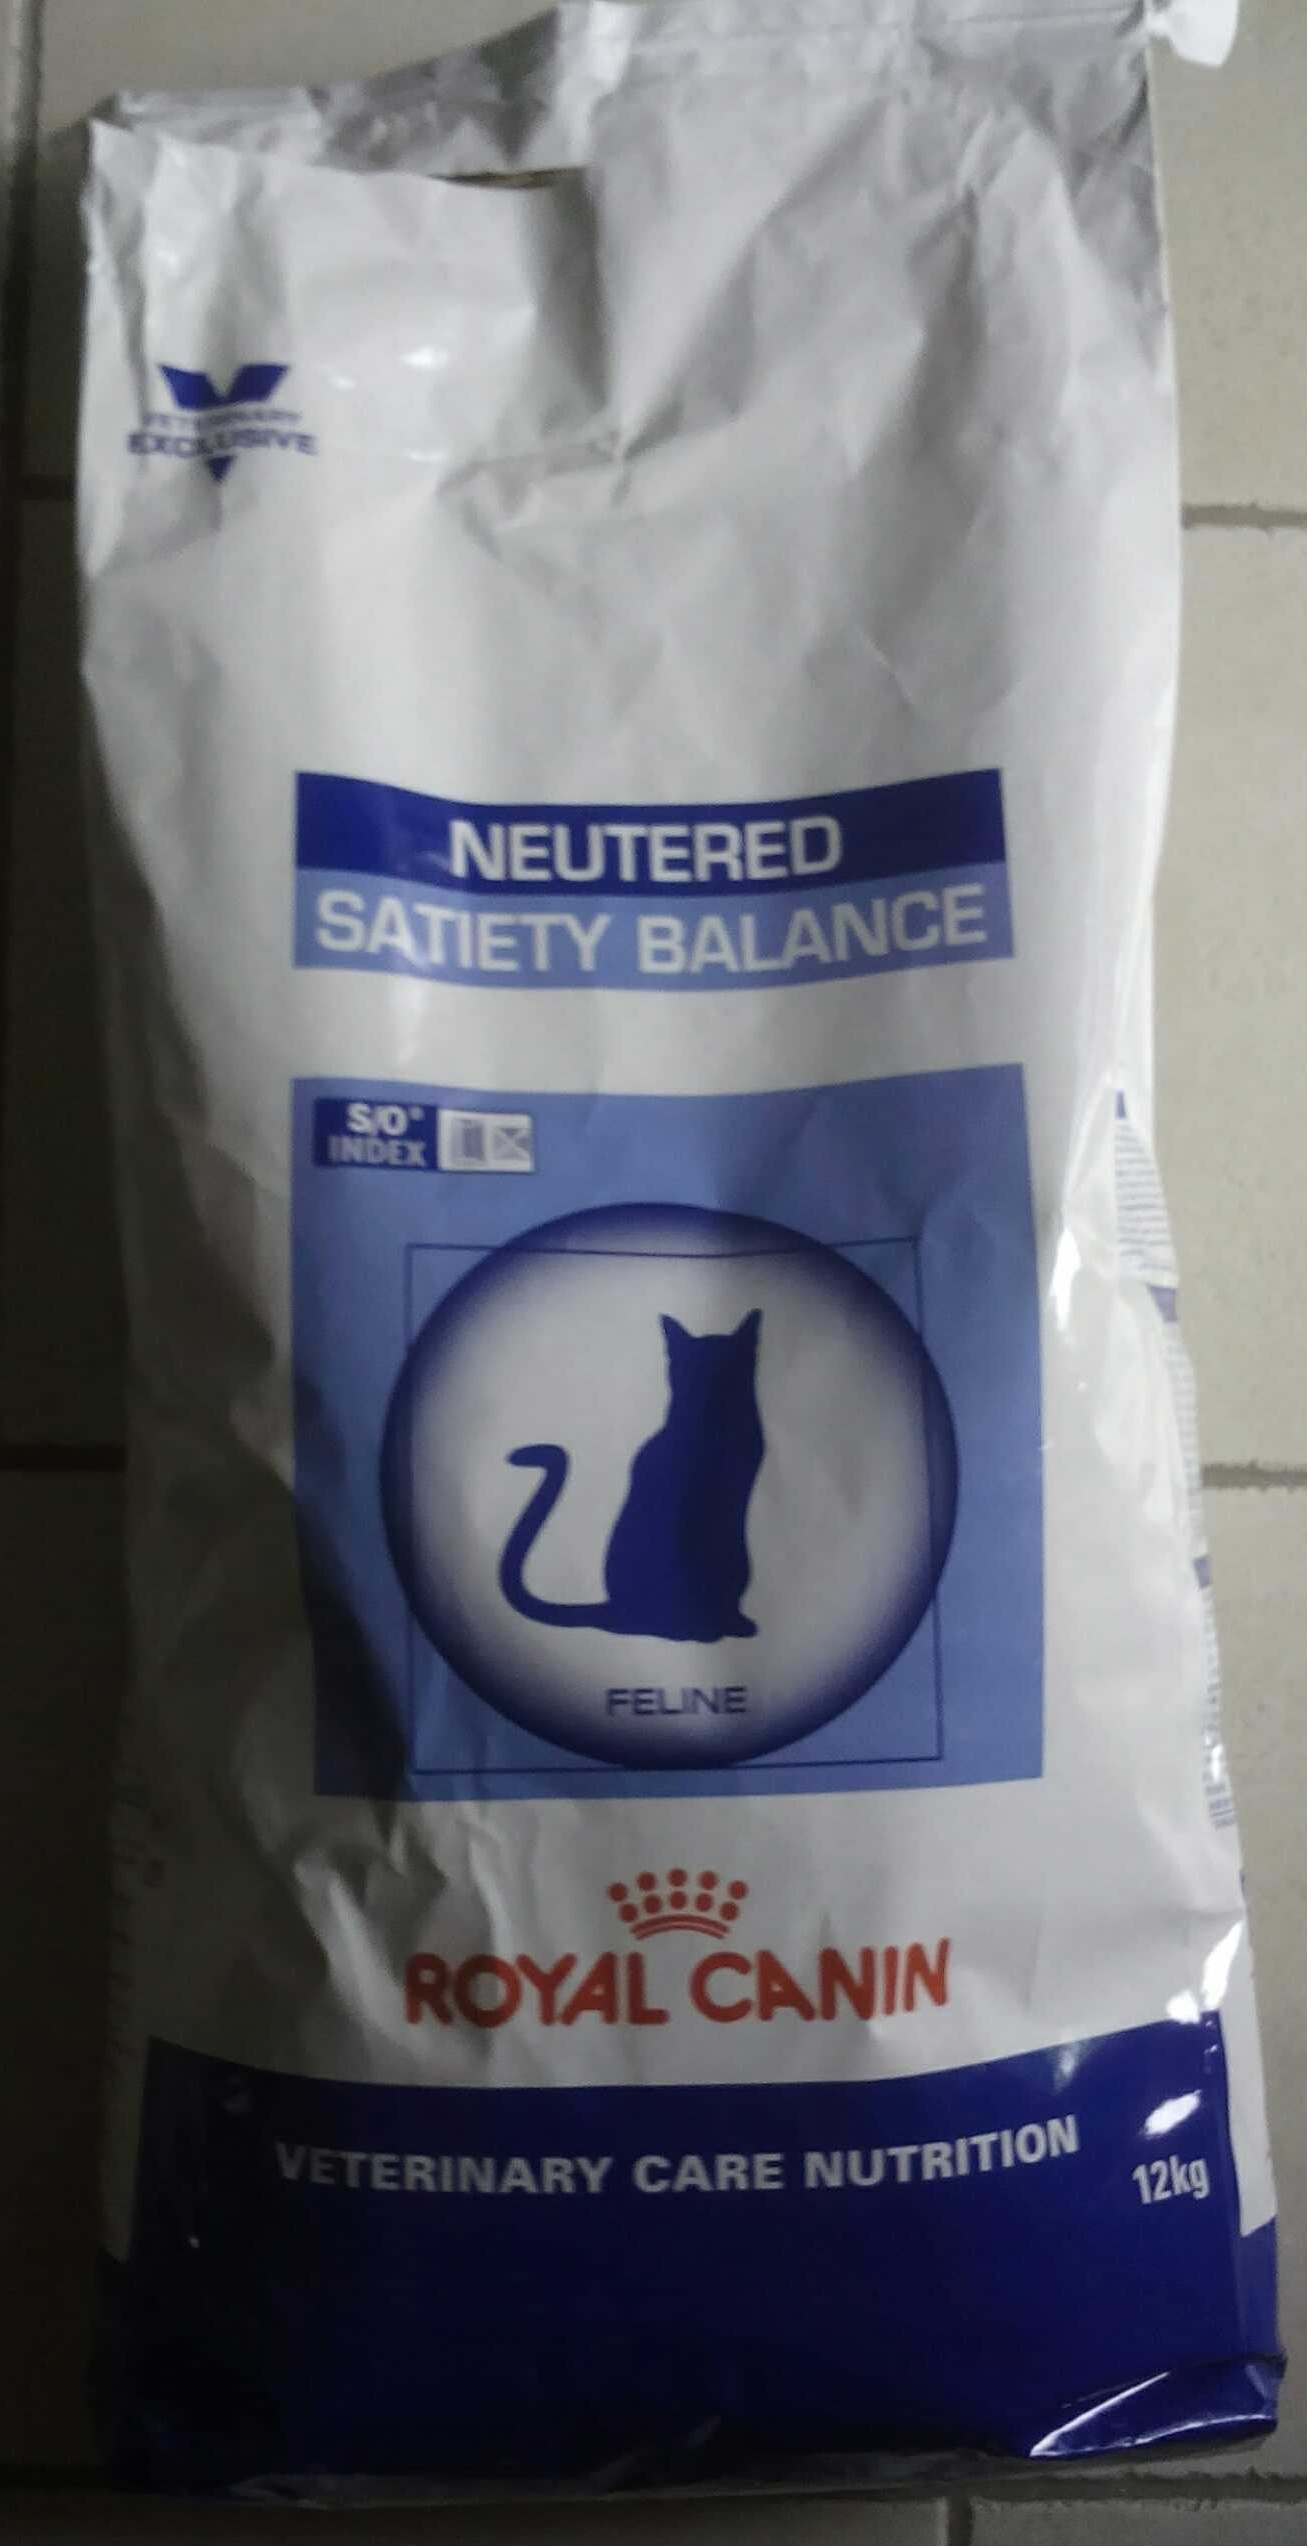 Royal Canin, Neutered satiety balance - Product - en